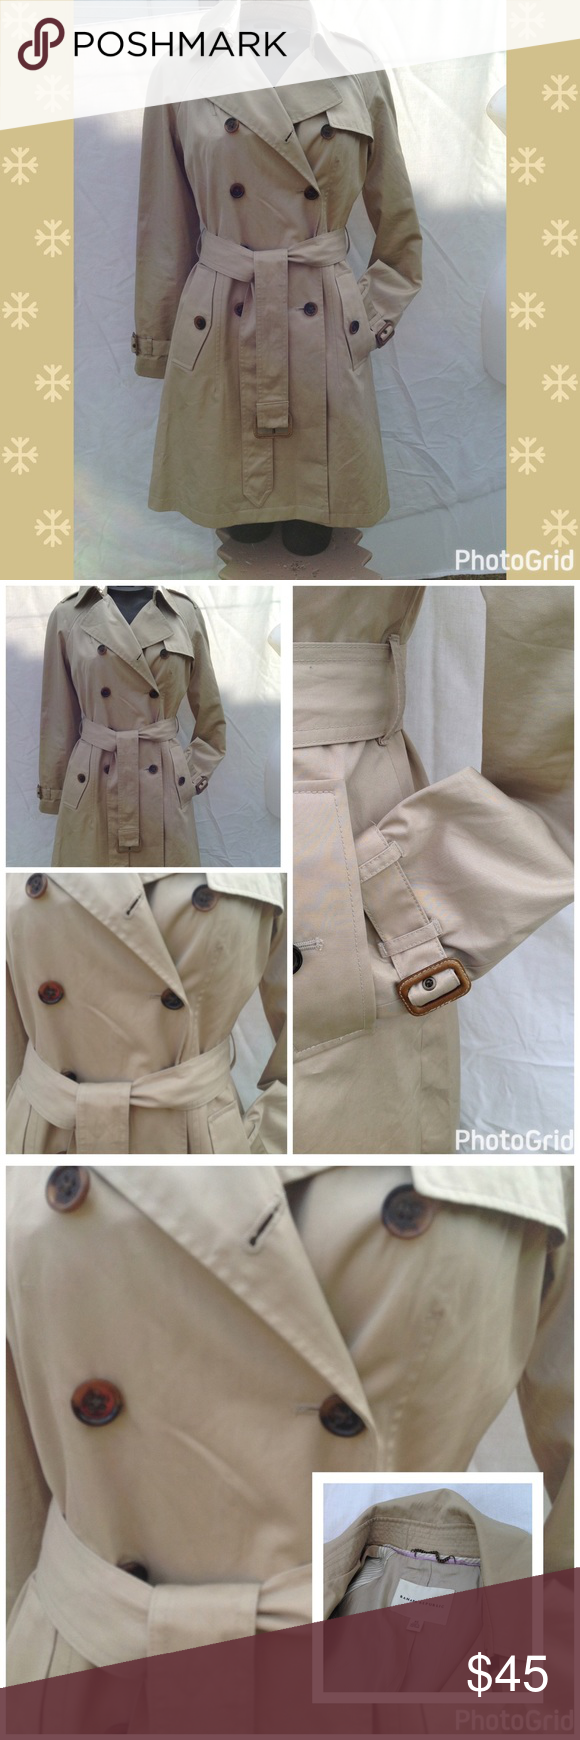 BANANA REPUBLIC TRENCH COAT Excellent condition , never wear it,, sat in closet ,,,, small mark/stain on back almost unnoticeable (piece of tape stuck to it) Banana Republic Jackets & Coats Trench Coats